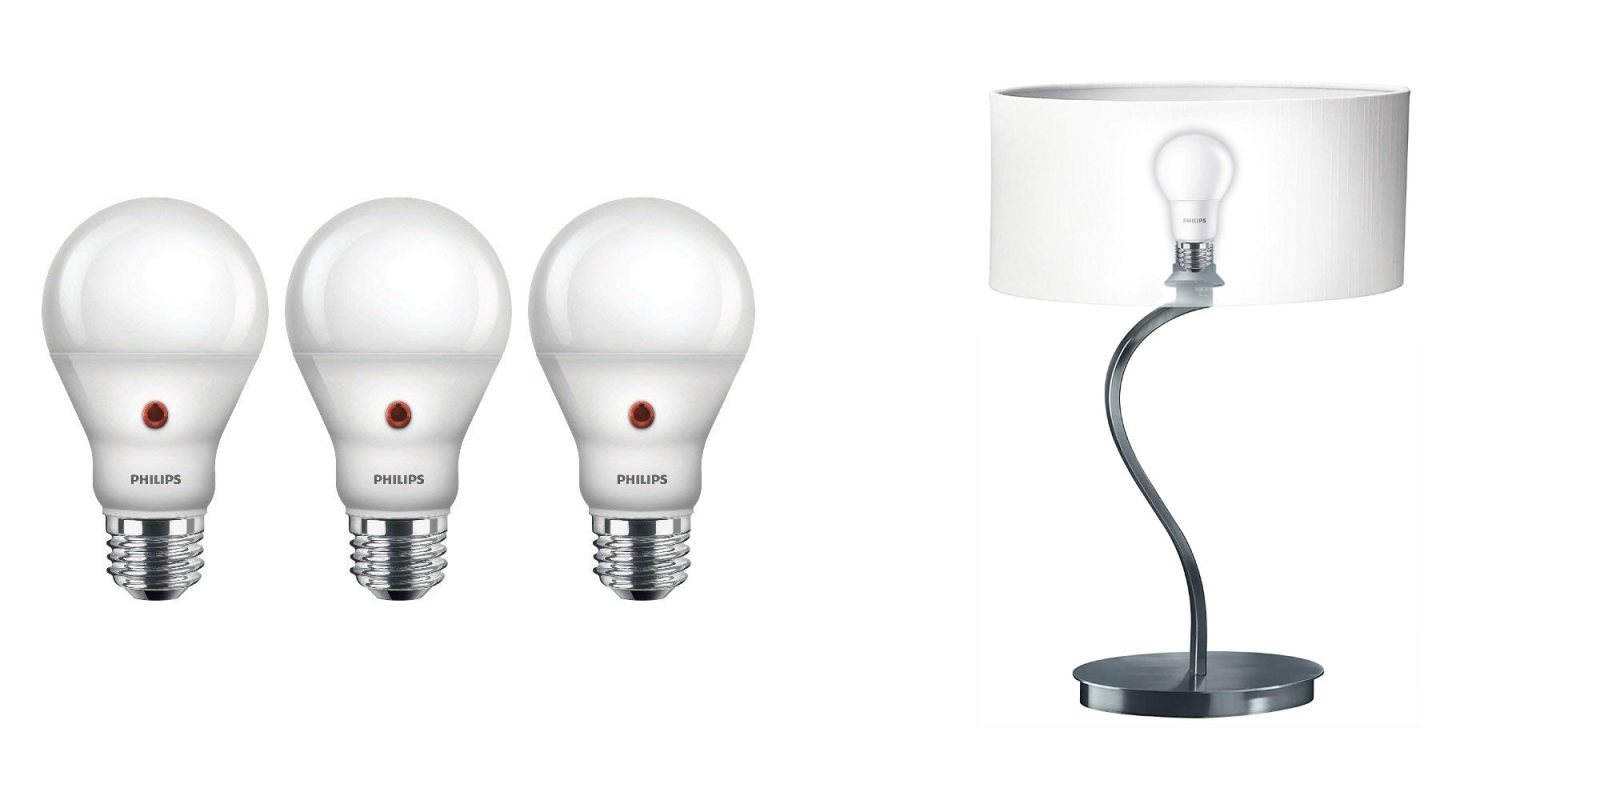 Philips Dusk To Dawn Led Bulbs Automatically Turn On Off 3 Pack At 17 50 Reg 25